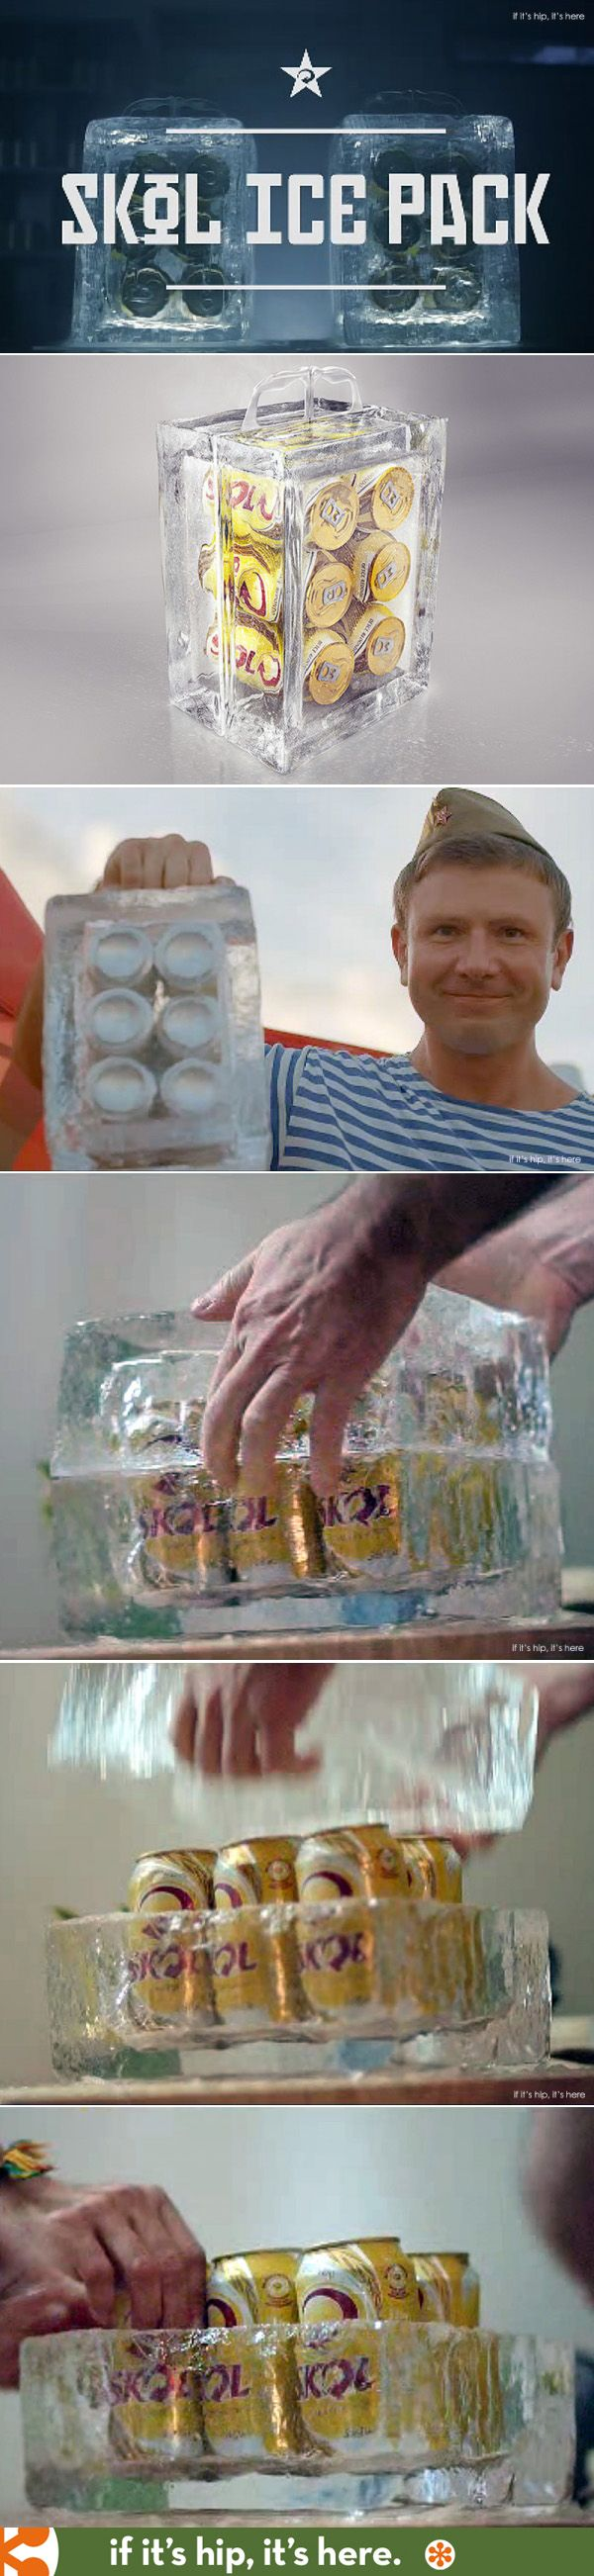 The Skol Ice Pack is a six pack of beer in a portable frozen block of ice (without freezing the beer). The unique packaging is part of a marketing effort to welcome foreigners to the World Cup in Brazil.